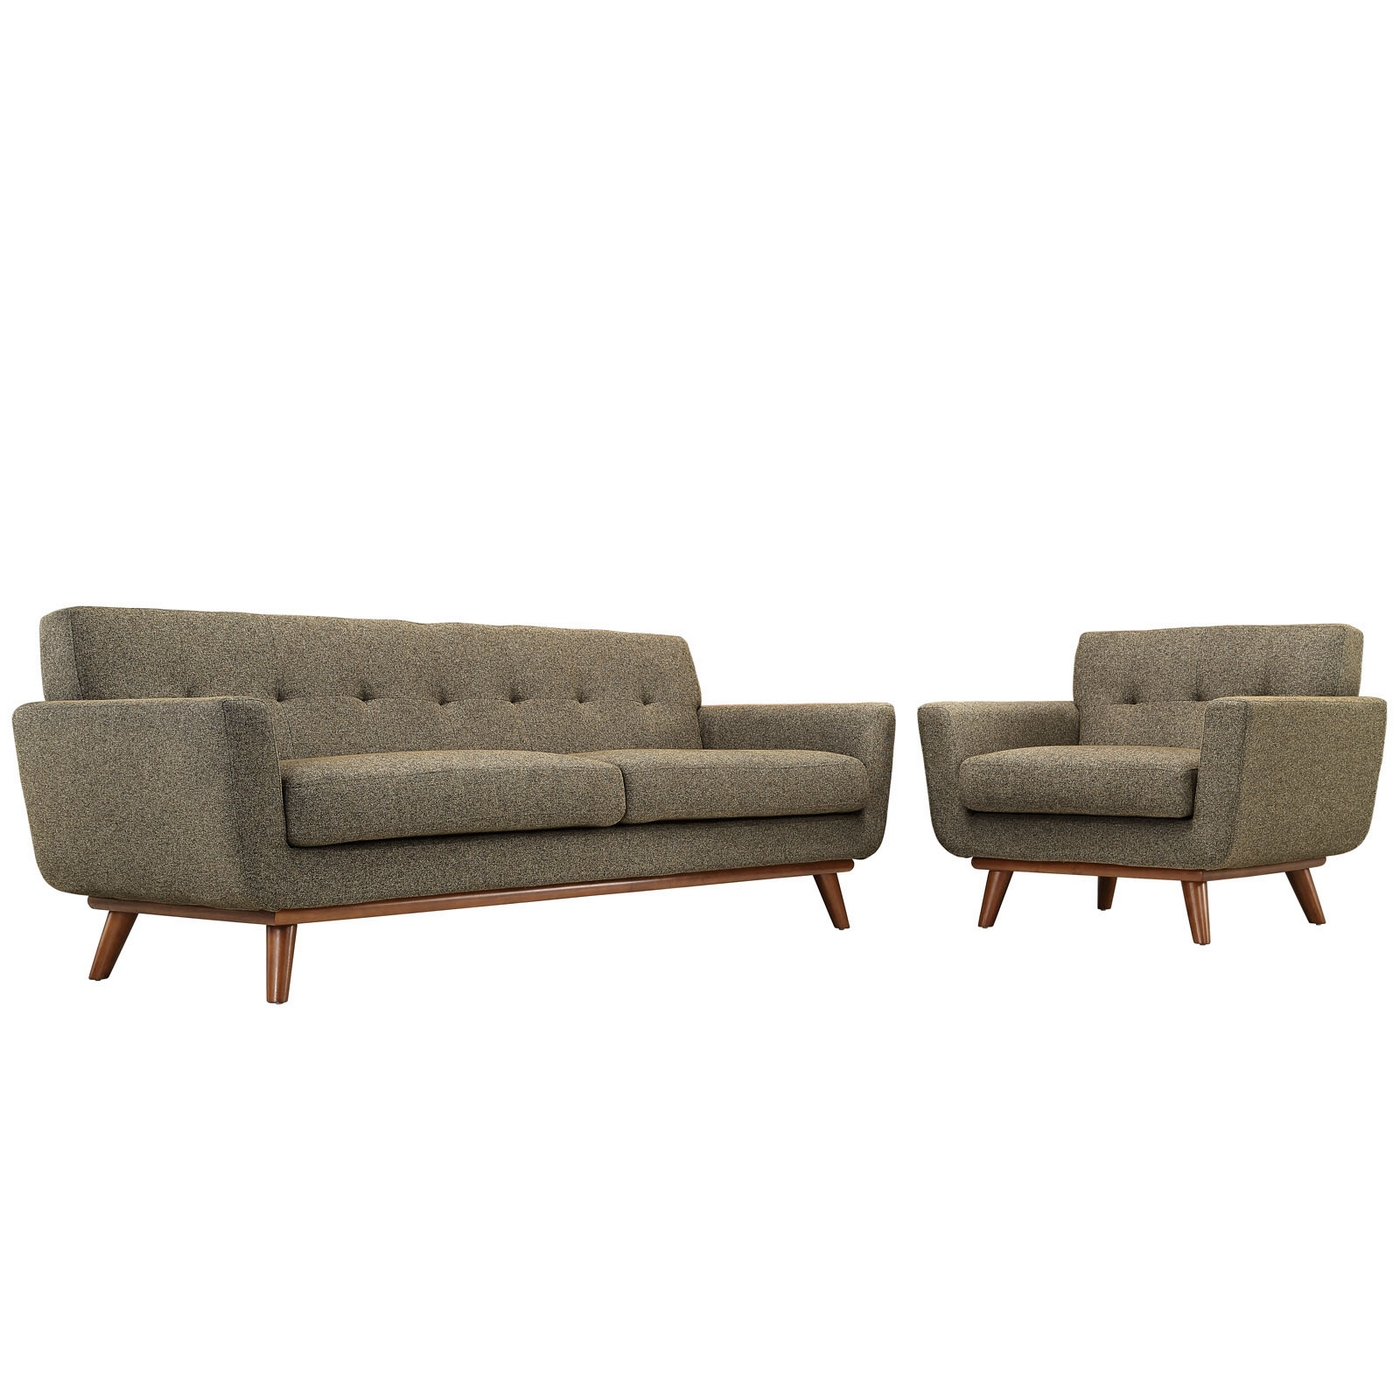 Engage modern 2pc upholstered button tufted sofa for Tufted couch set